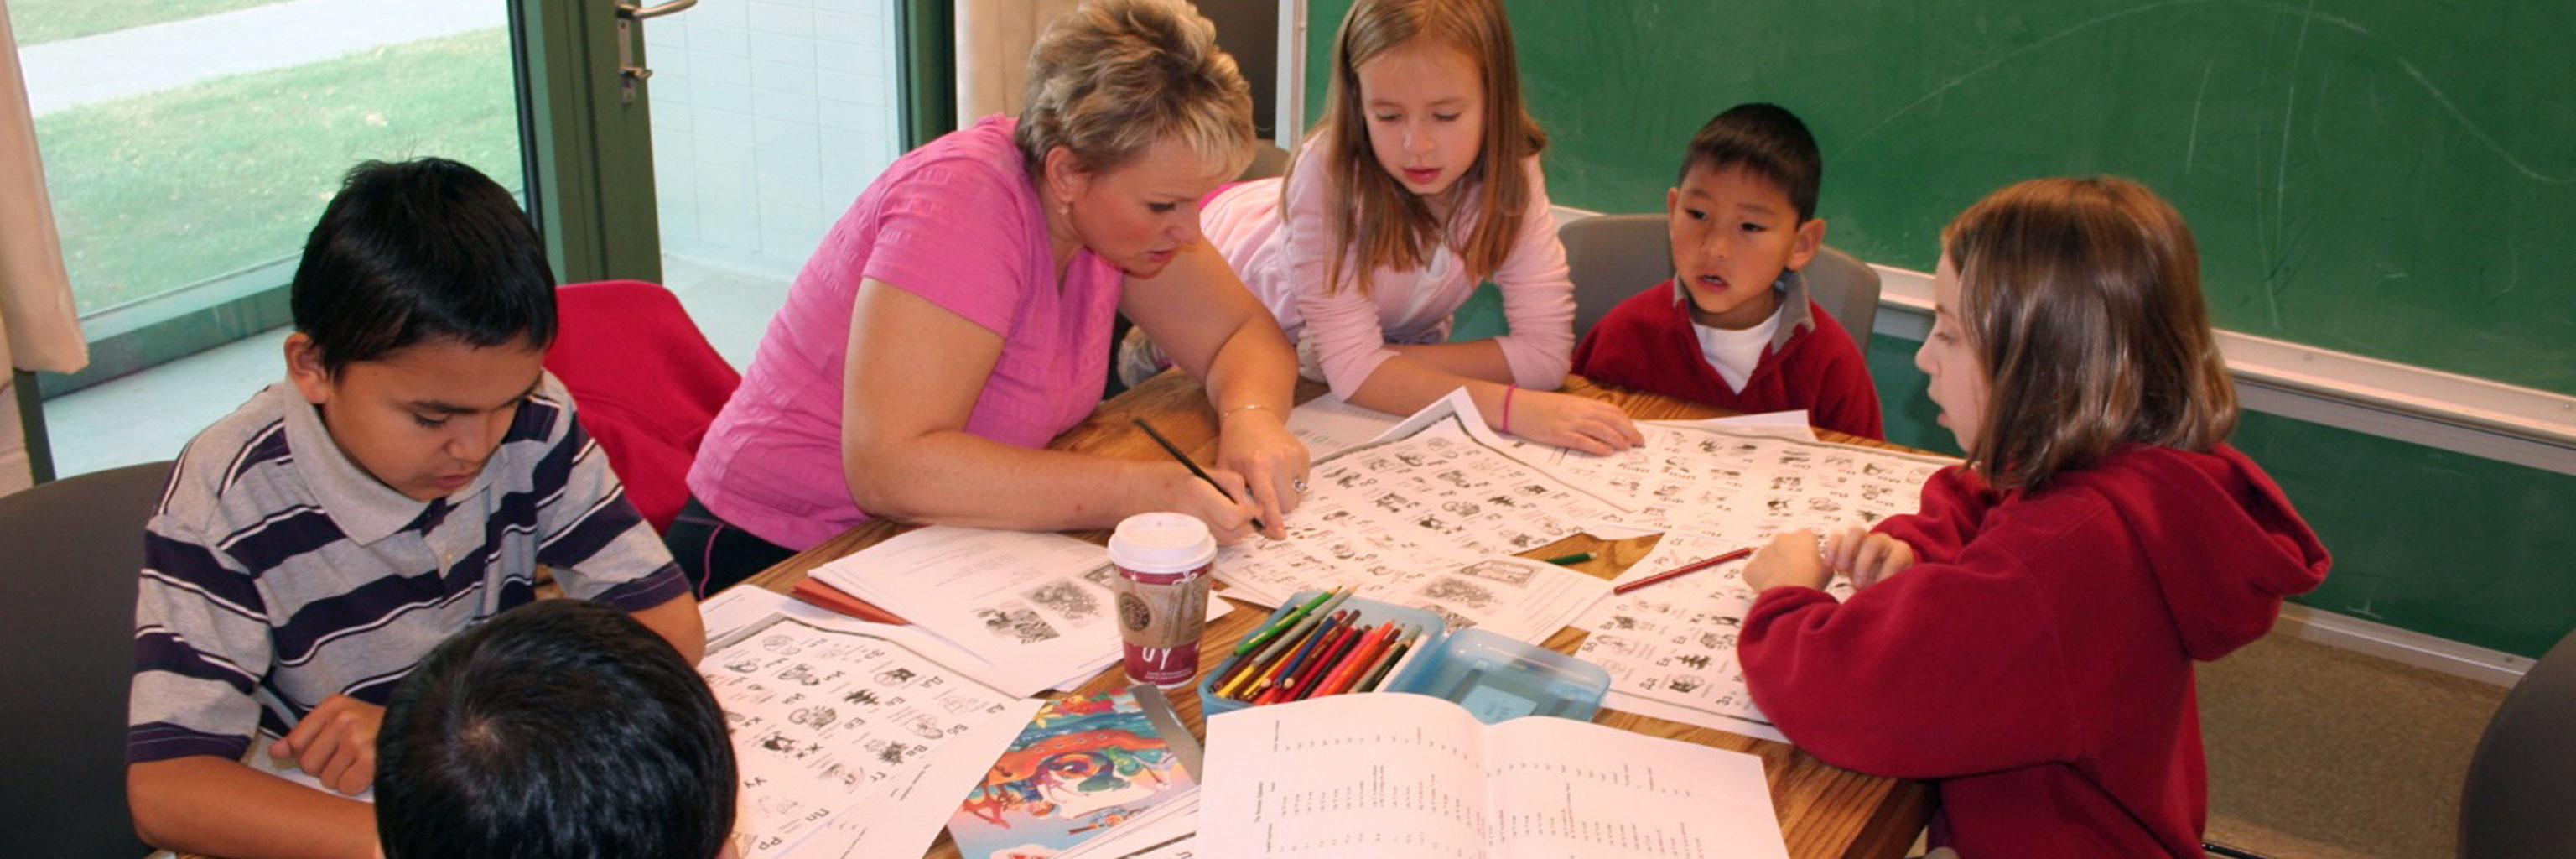 Teacher showing children coloring handouts in a classroom